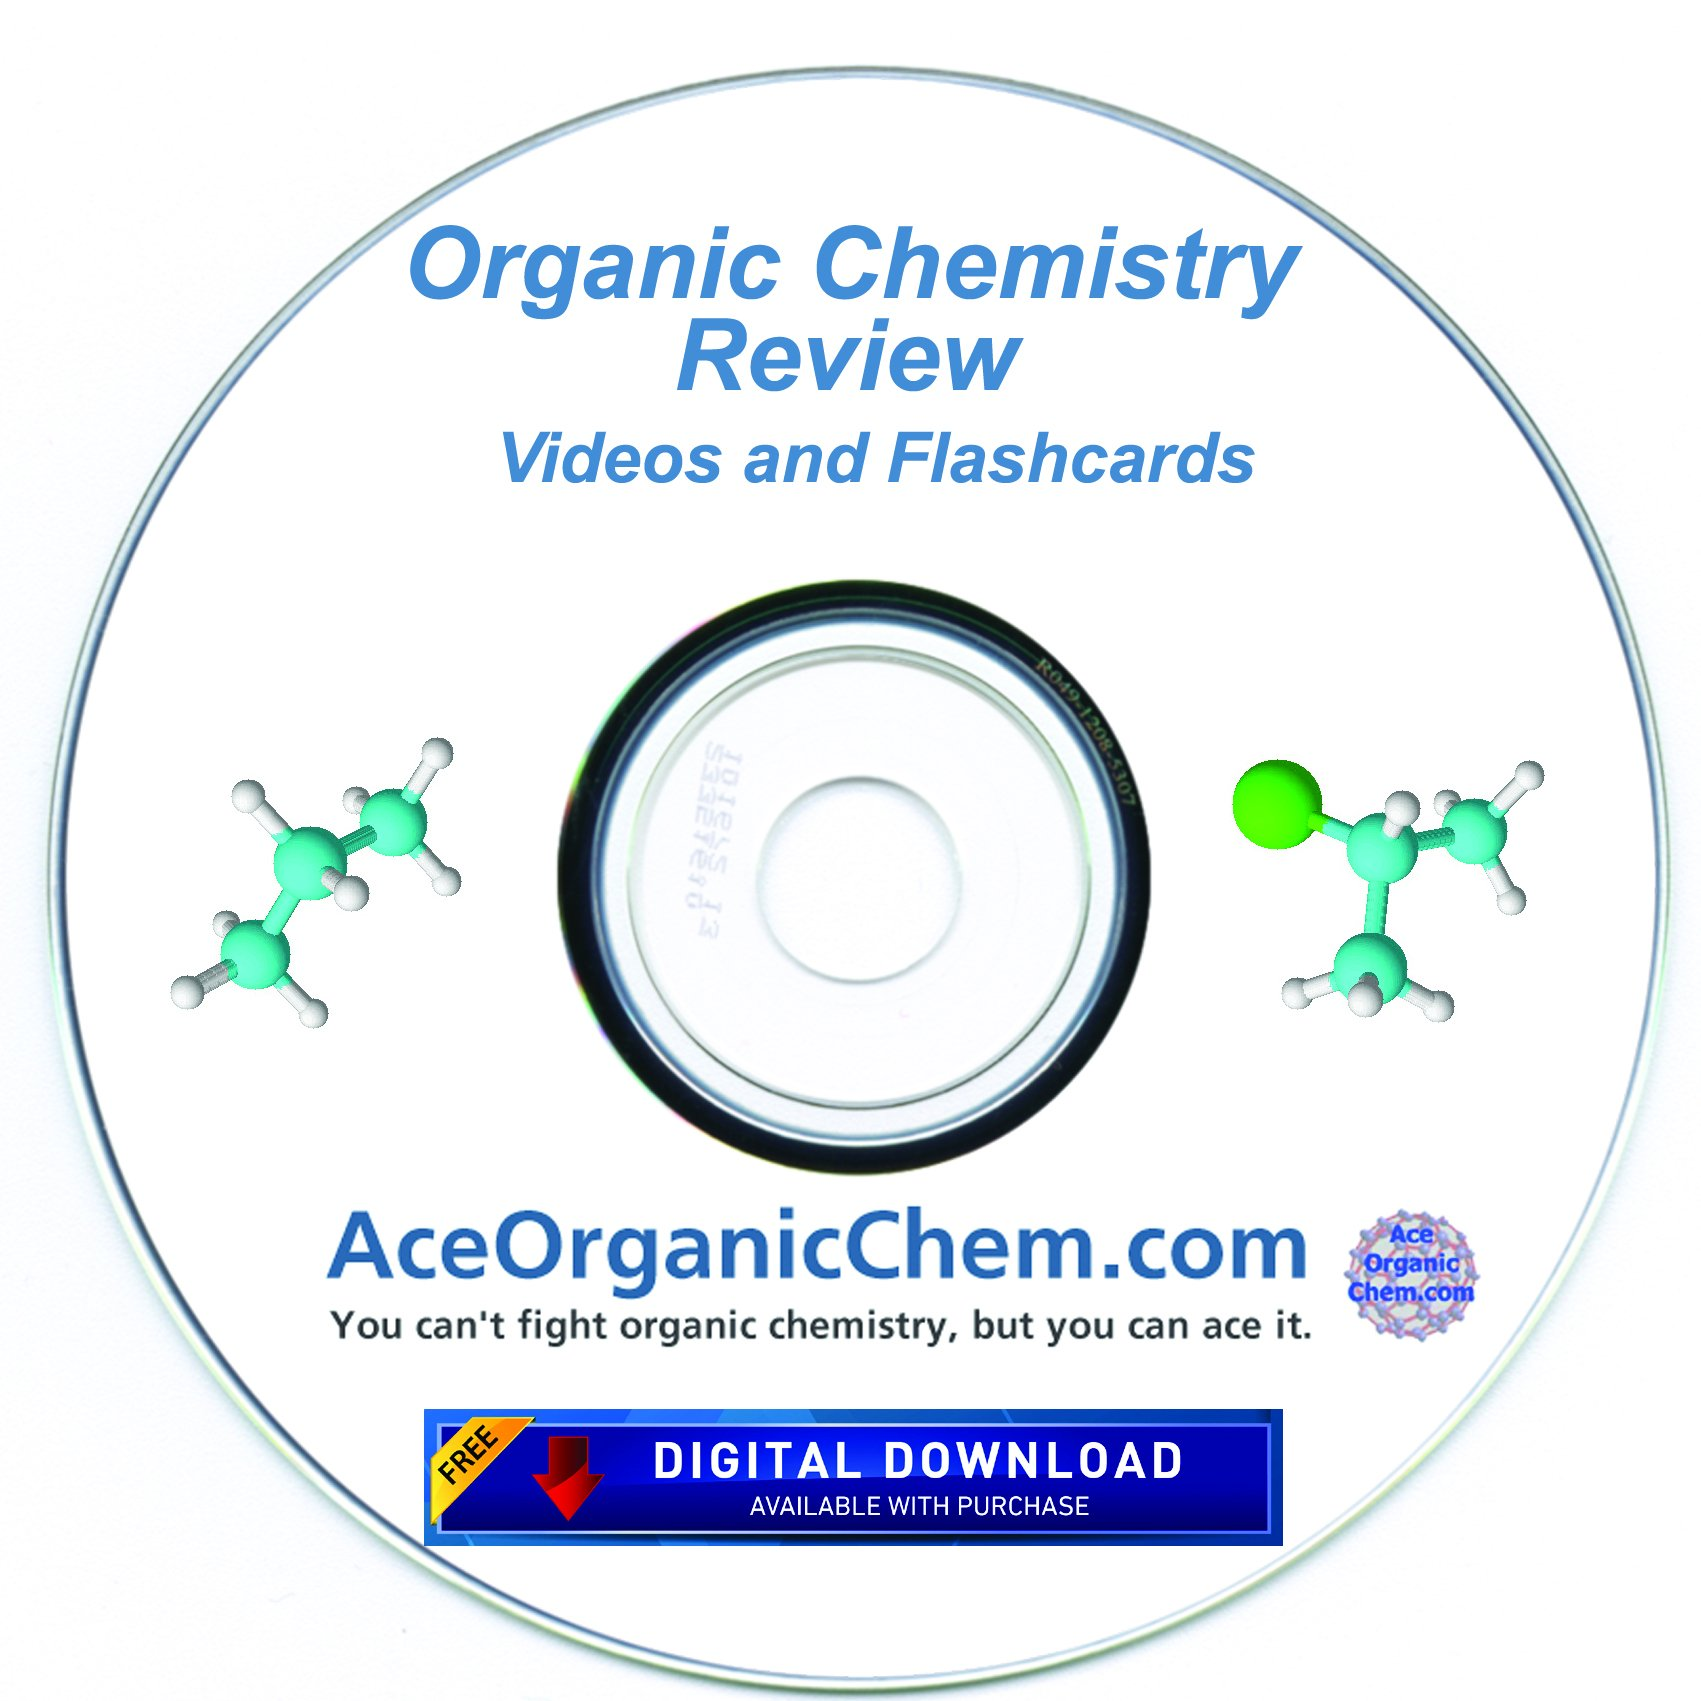 Condensed Organic Chemistry Help DVD with Digital Download option- Organic Chemistry Study DVD with Complete Course Review Videos - by AceOrganicChem by AceOrganicChem